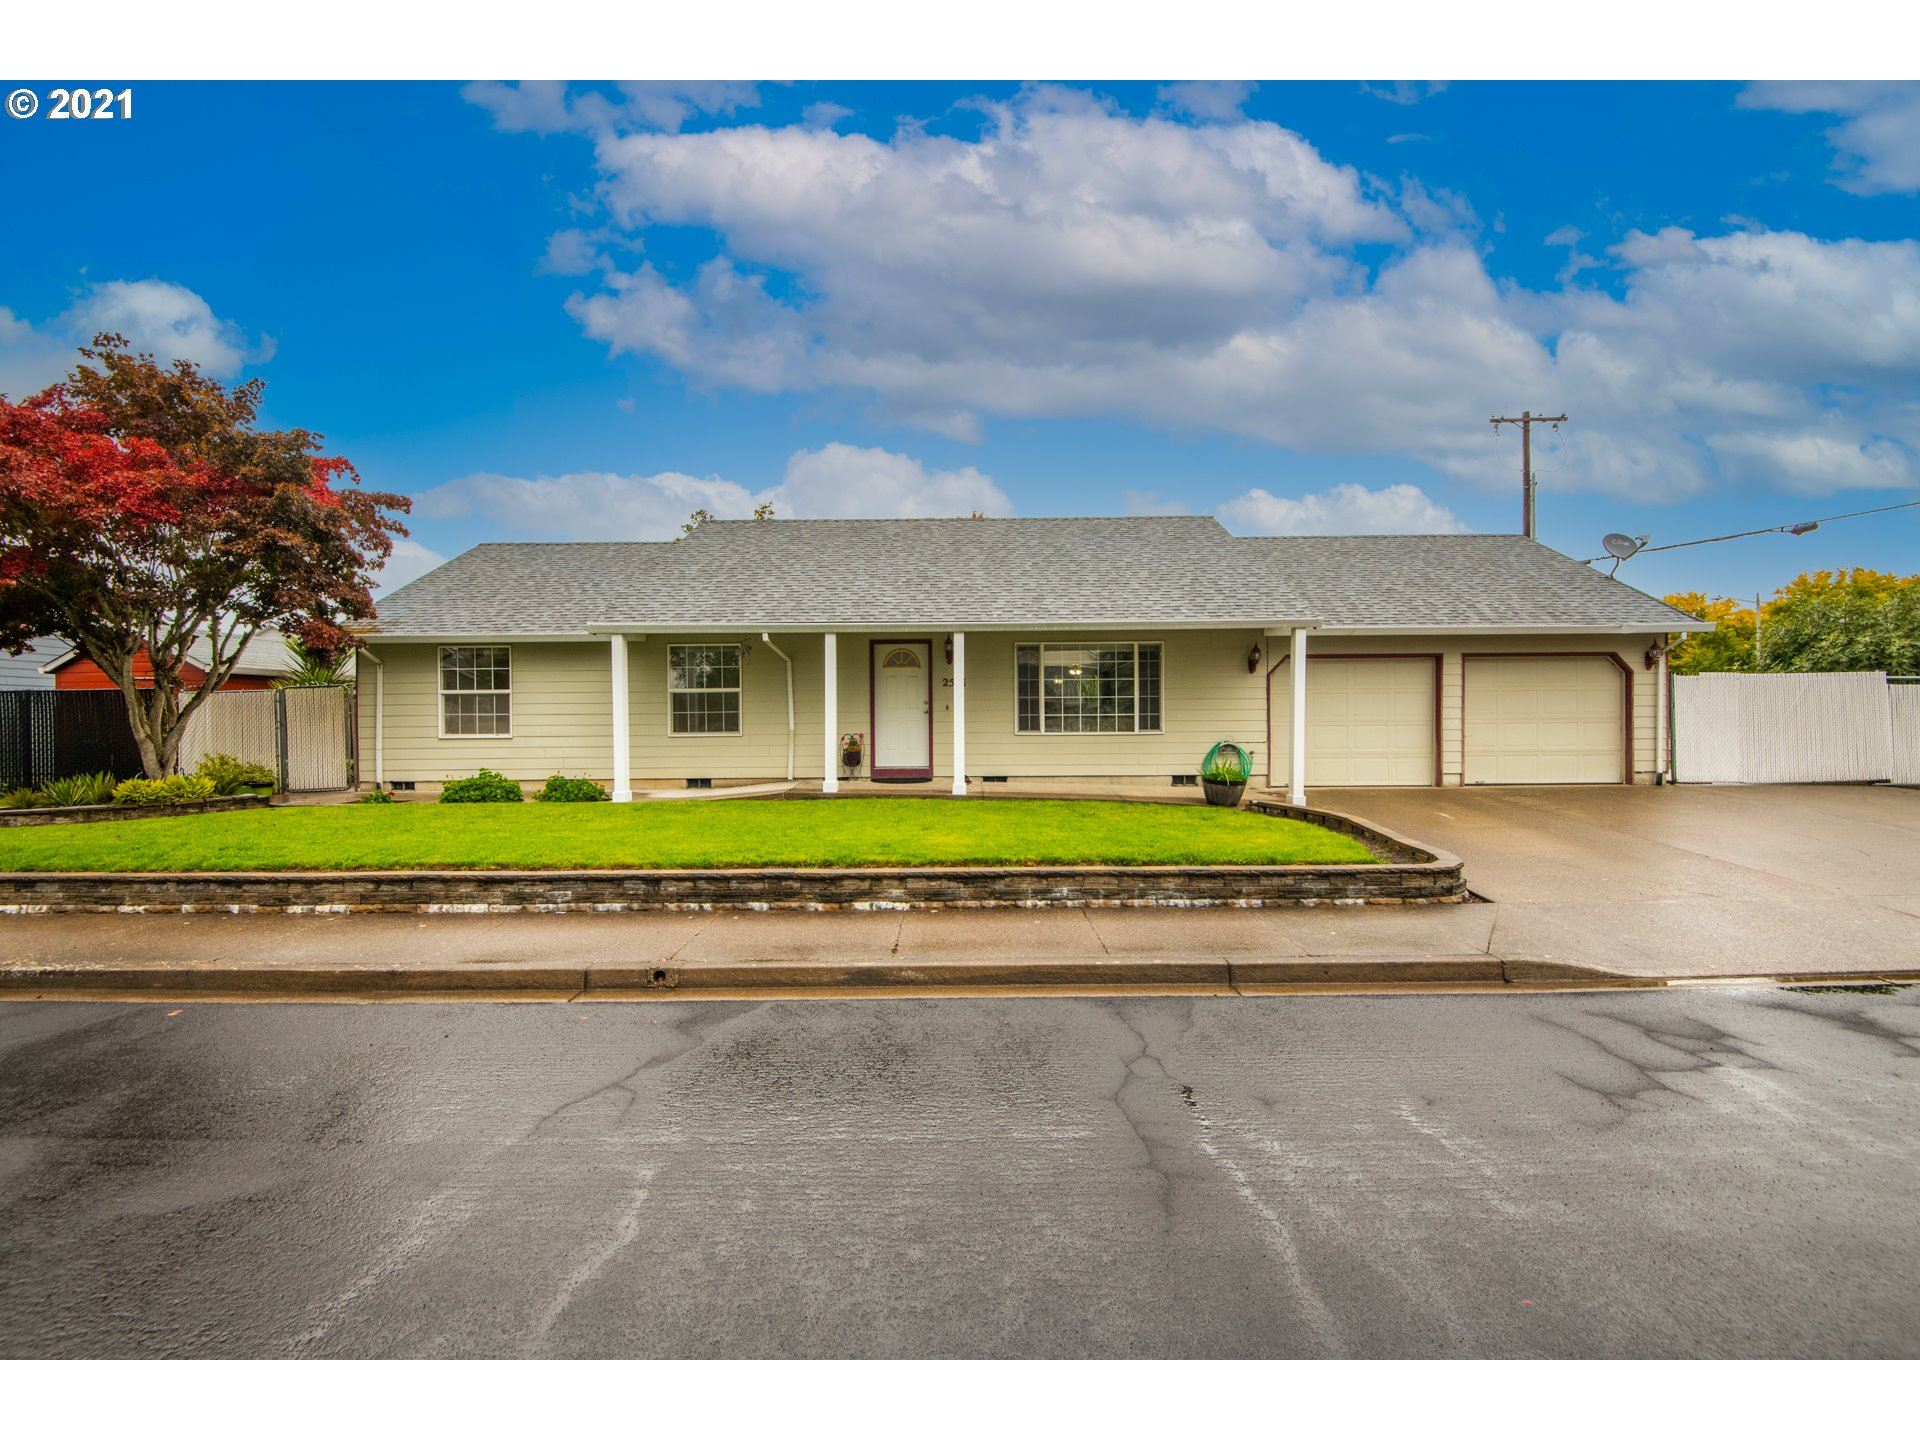 Photo of 2581 NE AARON DR, McMinnville, OR 97128 (MLS # 21639219)